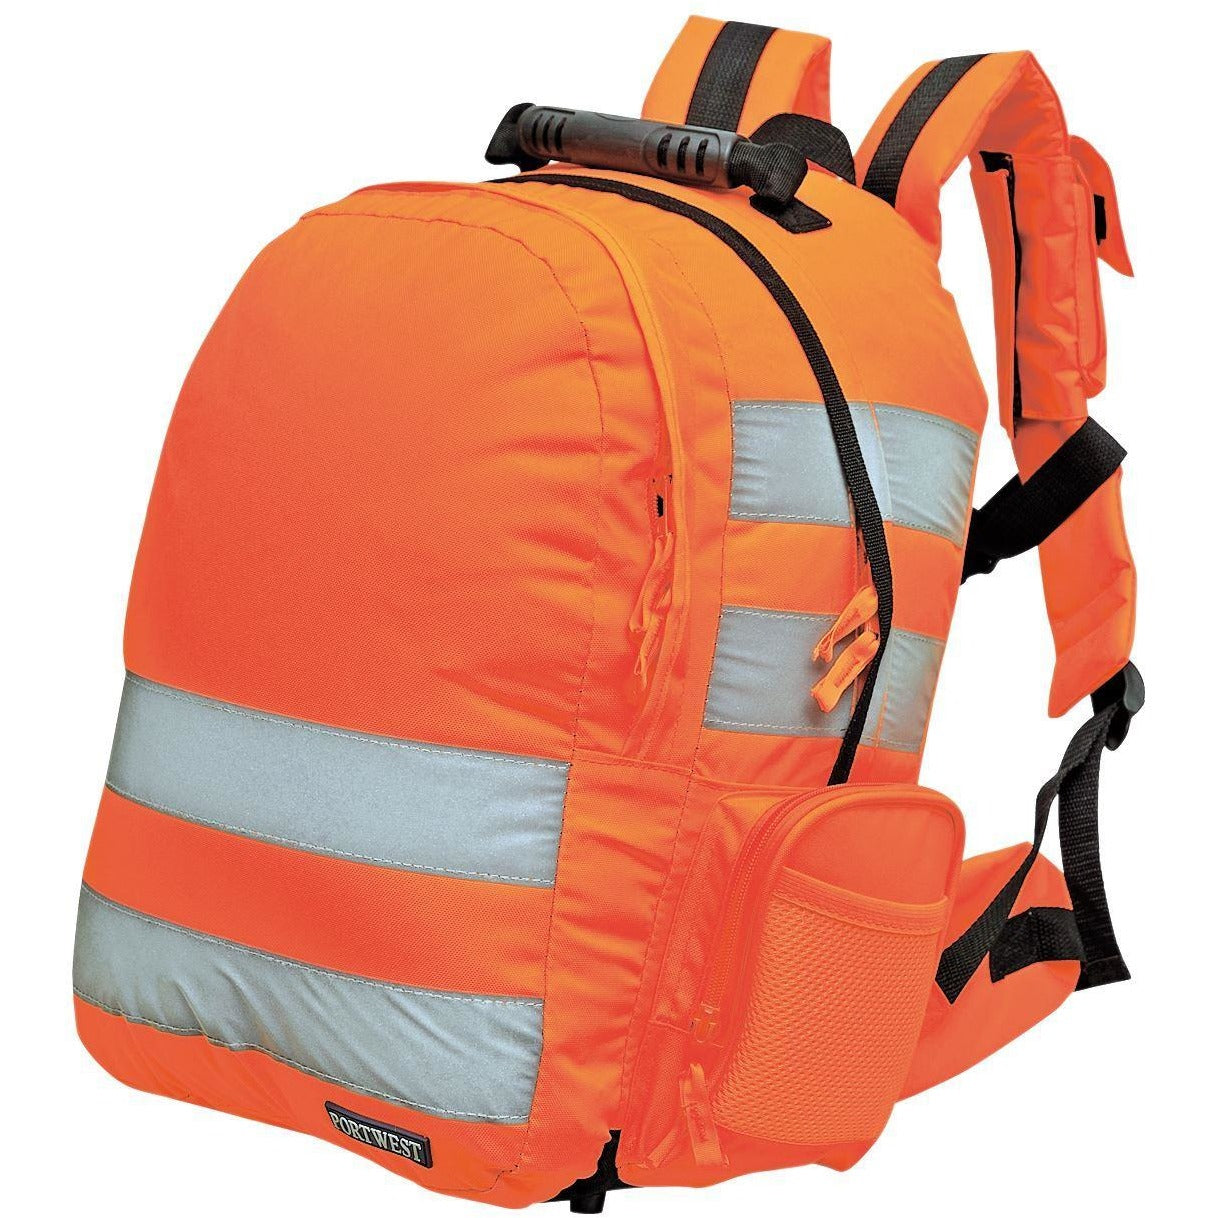 Portwest Quick Release Hi-Vis Rucksack Orange 25 Litres  B904